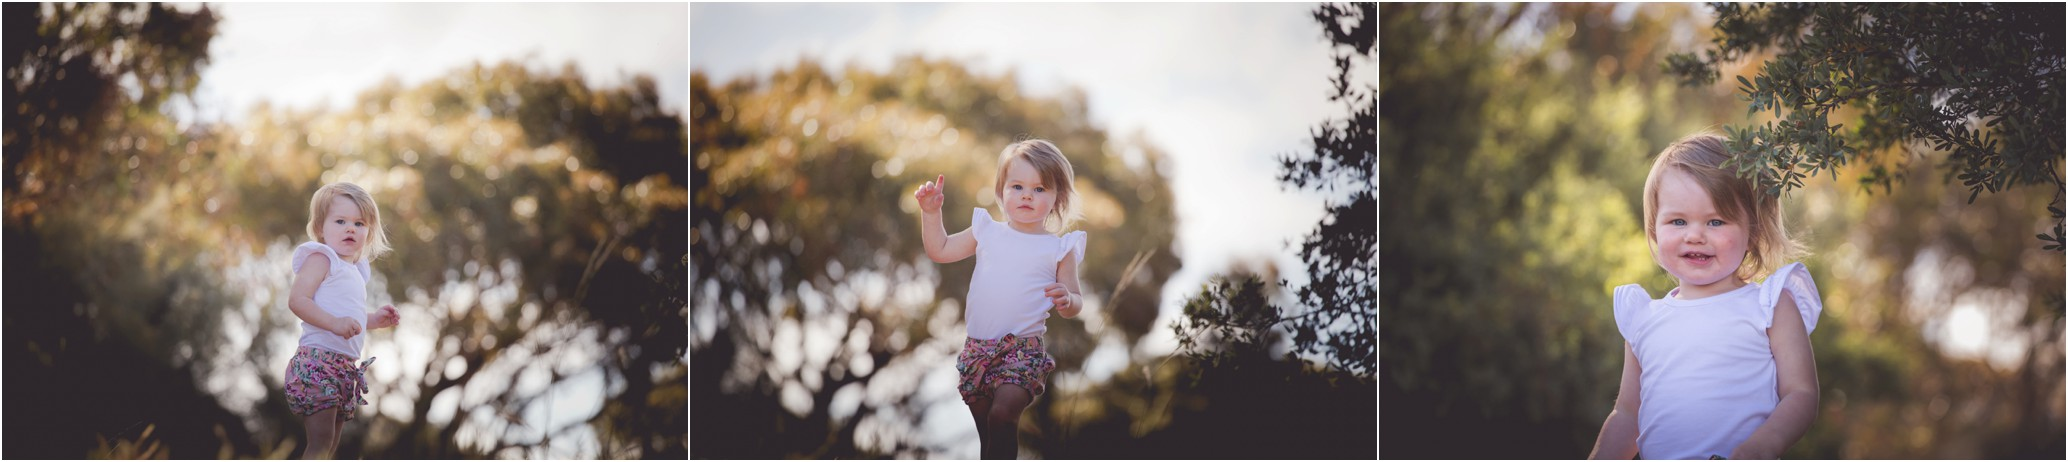 Family Photography Geelong_0747